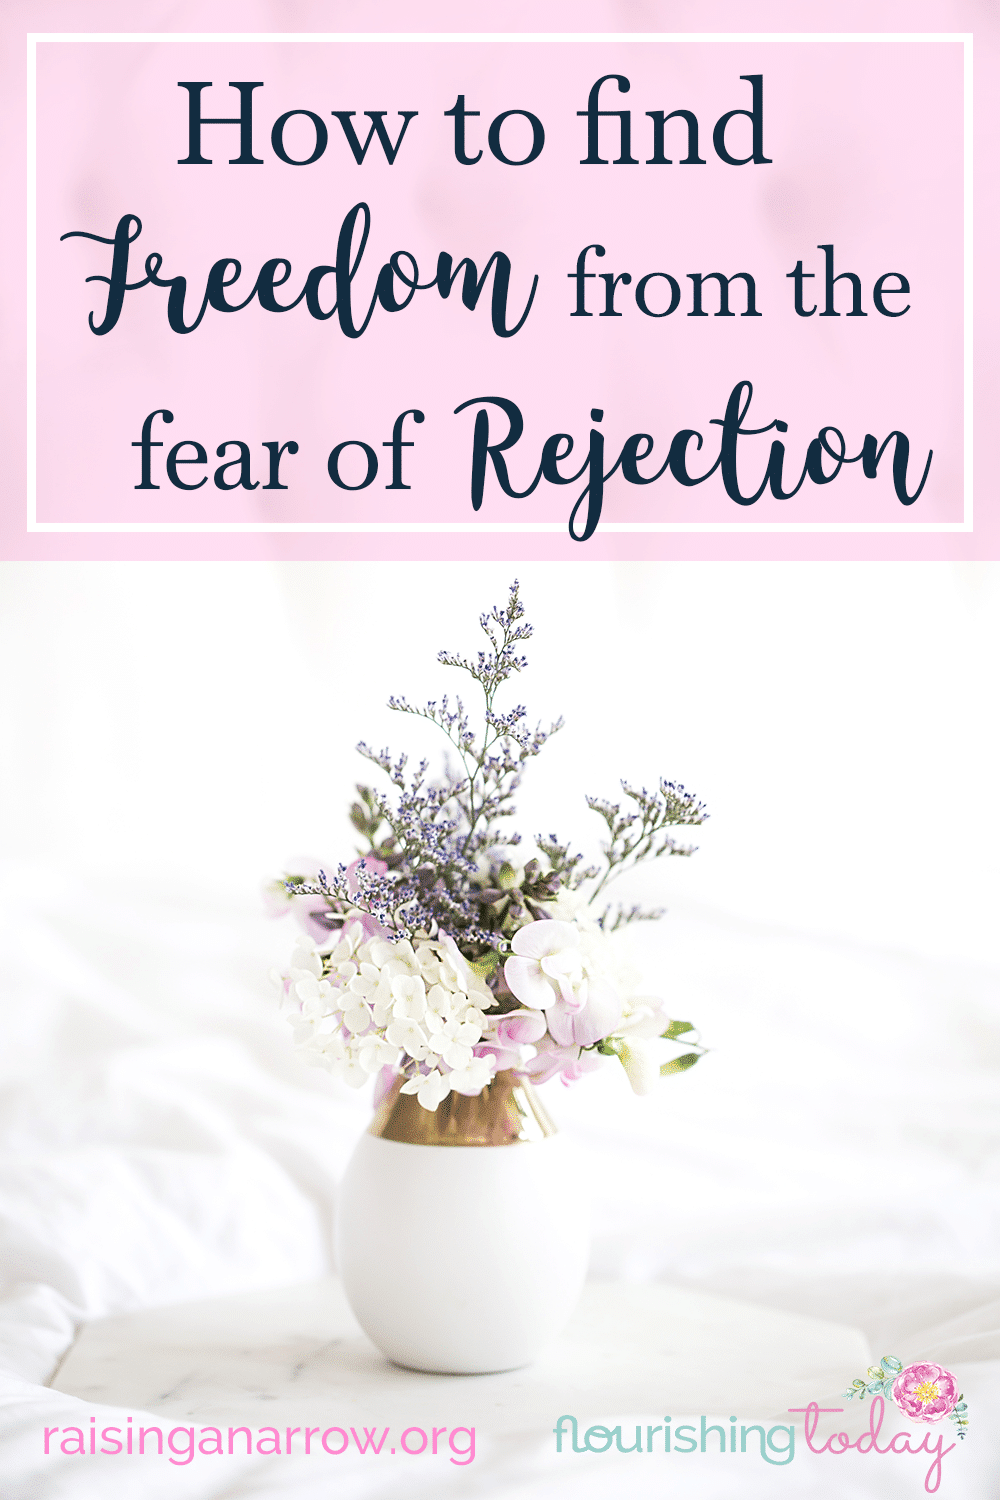 We all will experience rejection at some point, but we don't have to let it define us. Discover how you can find freedom in overcoming fear of rejection.